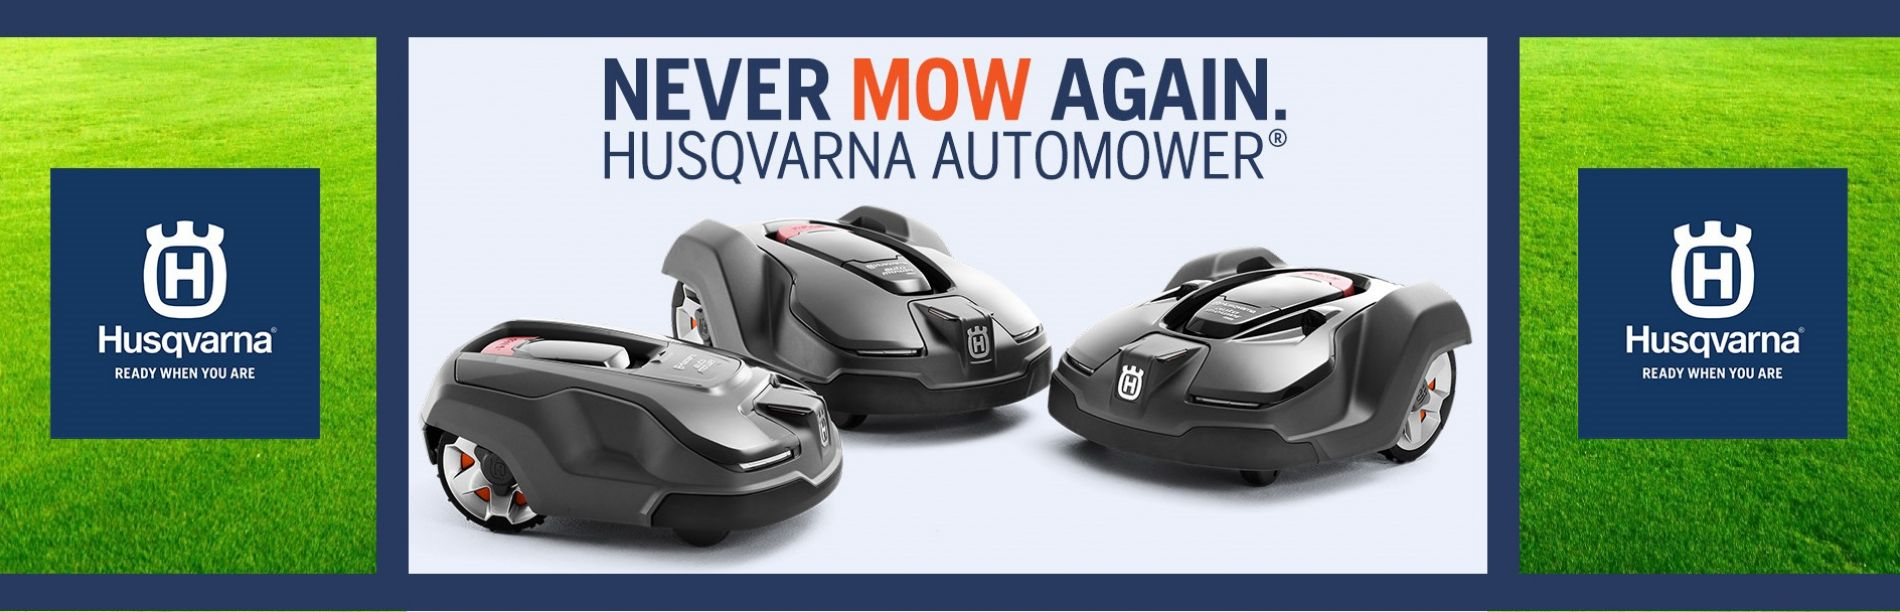 Husqvarna Automower - Find Out More!